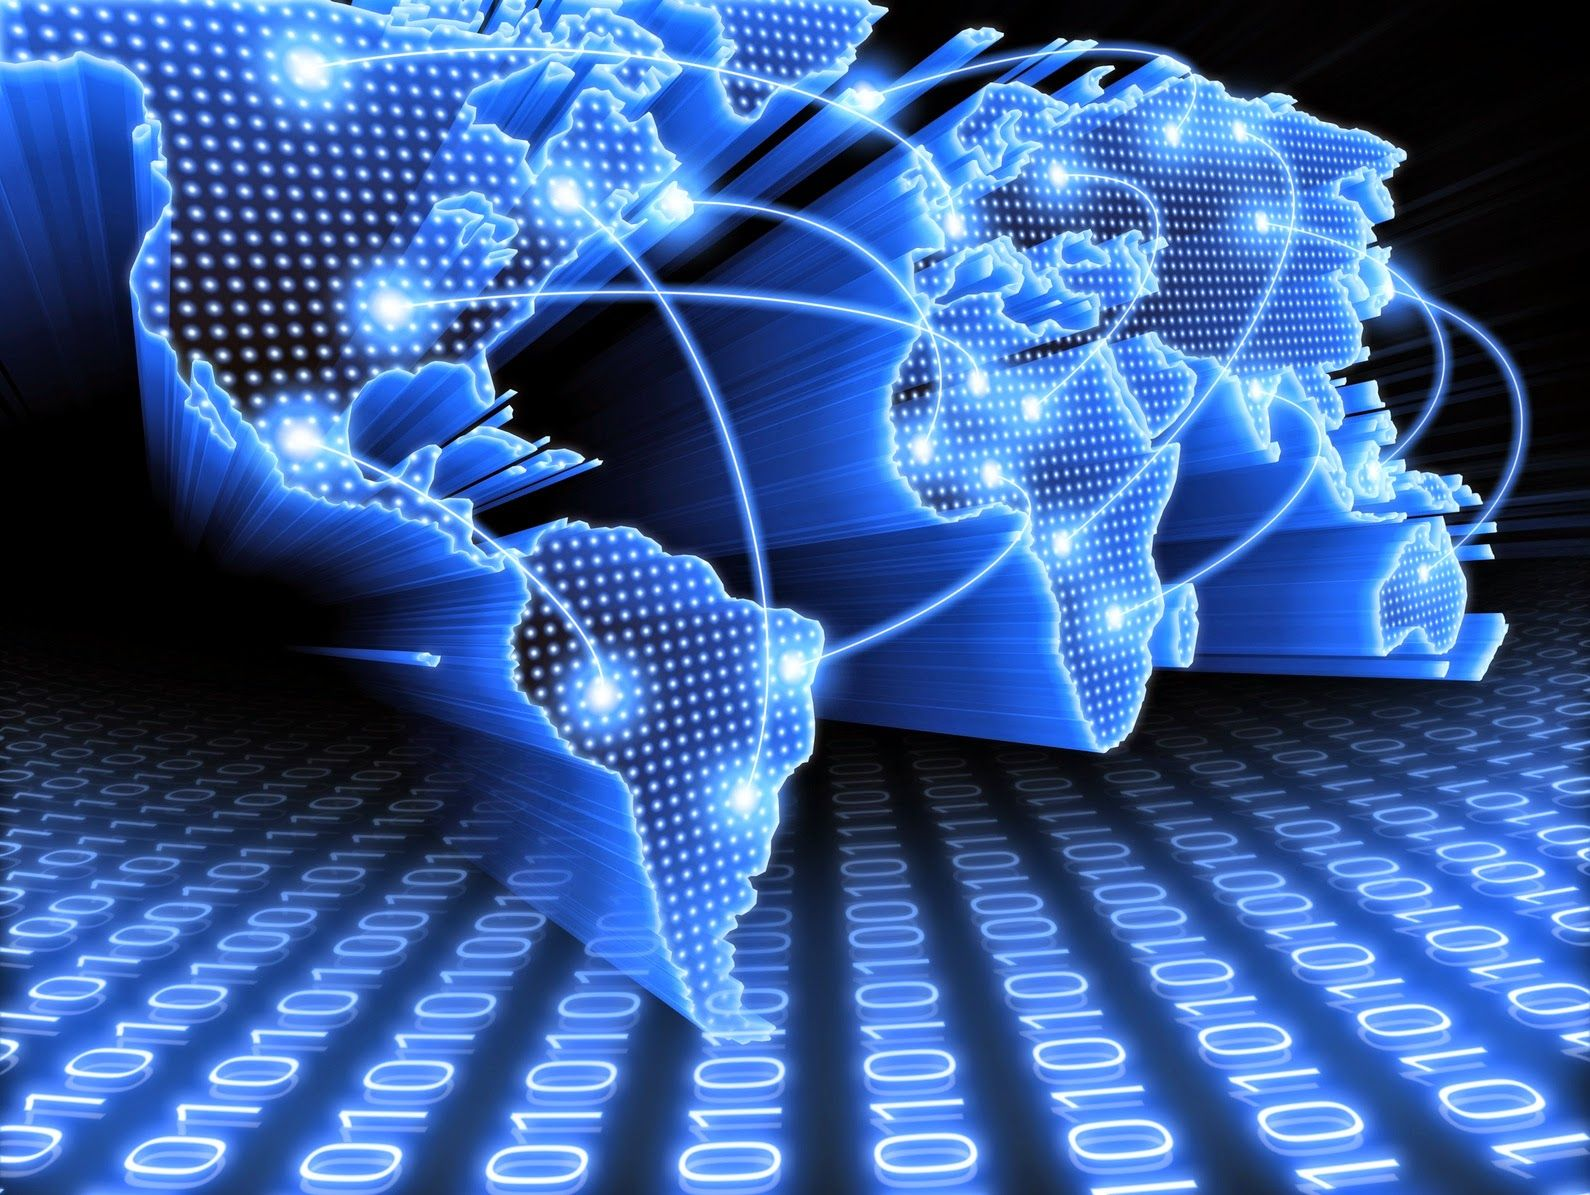 Every Day Is Special October 29 Internet Day Internet Safety Net Neutrality Internet Marketing